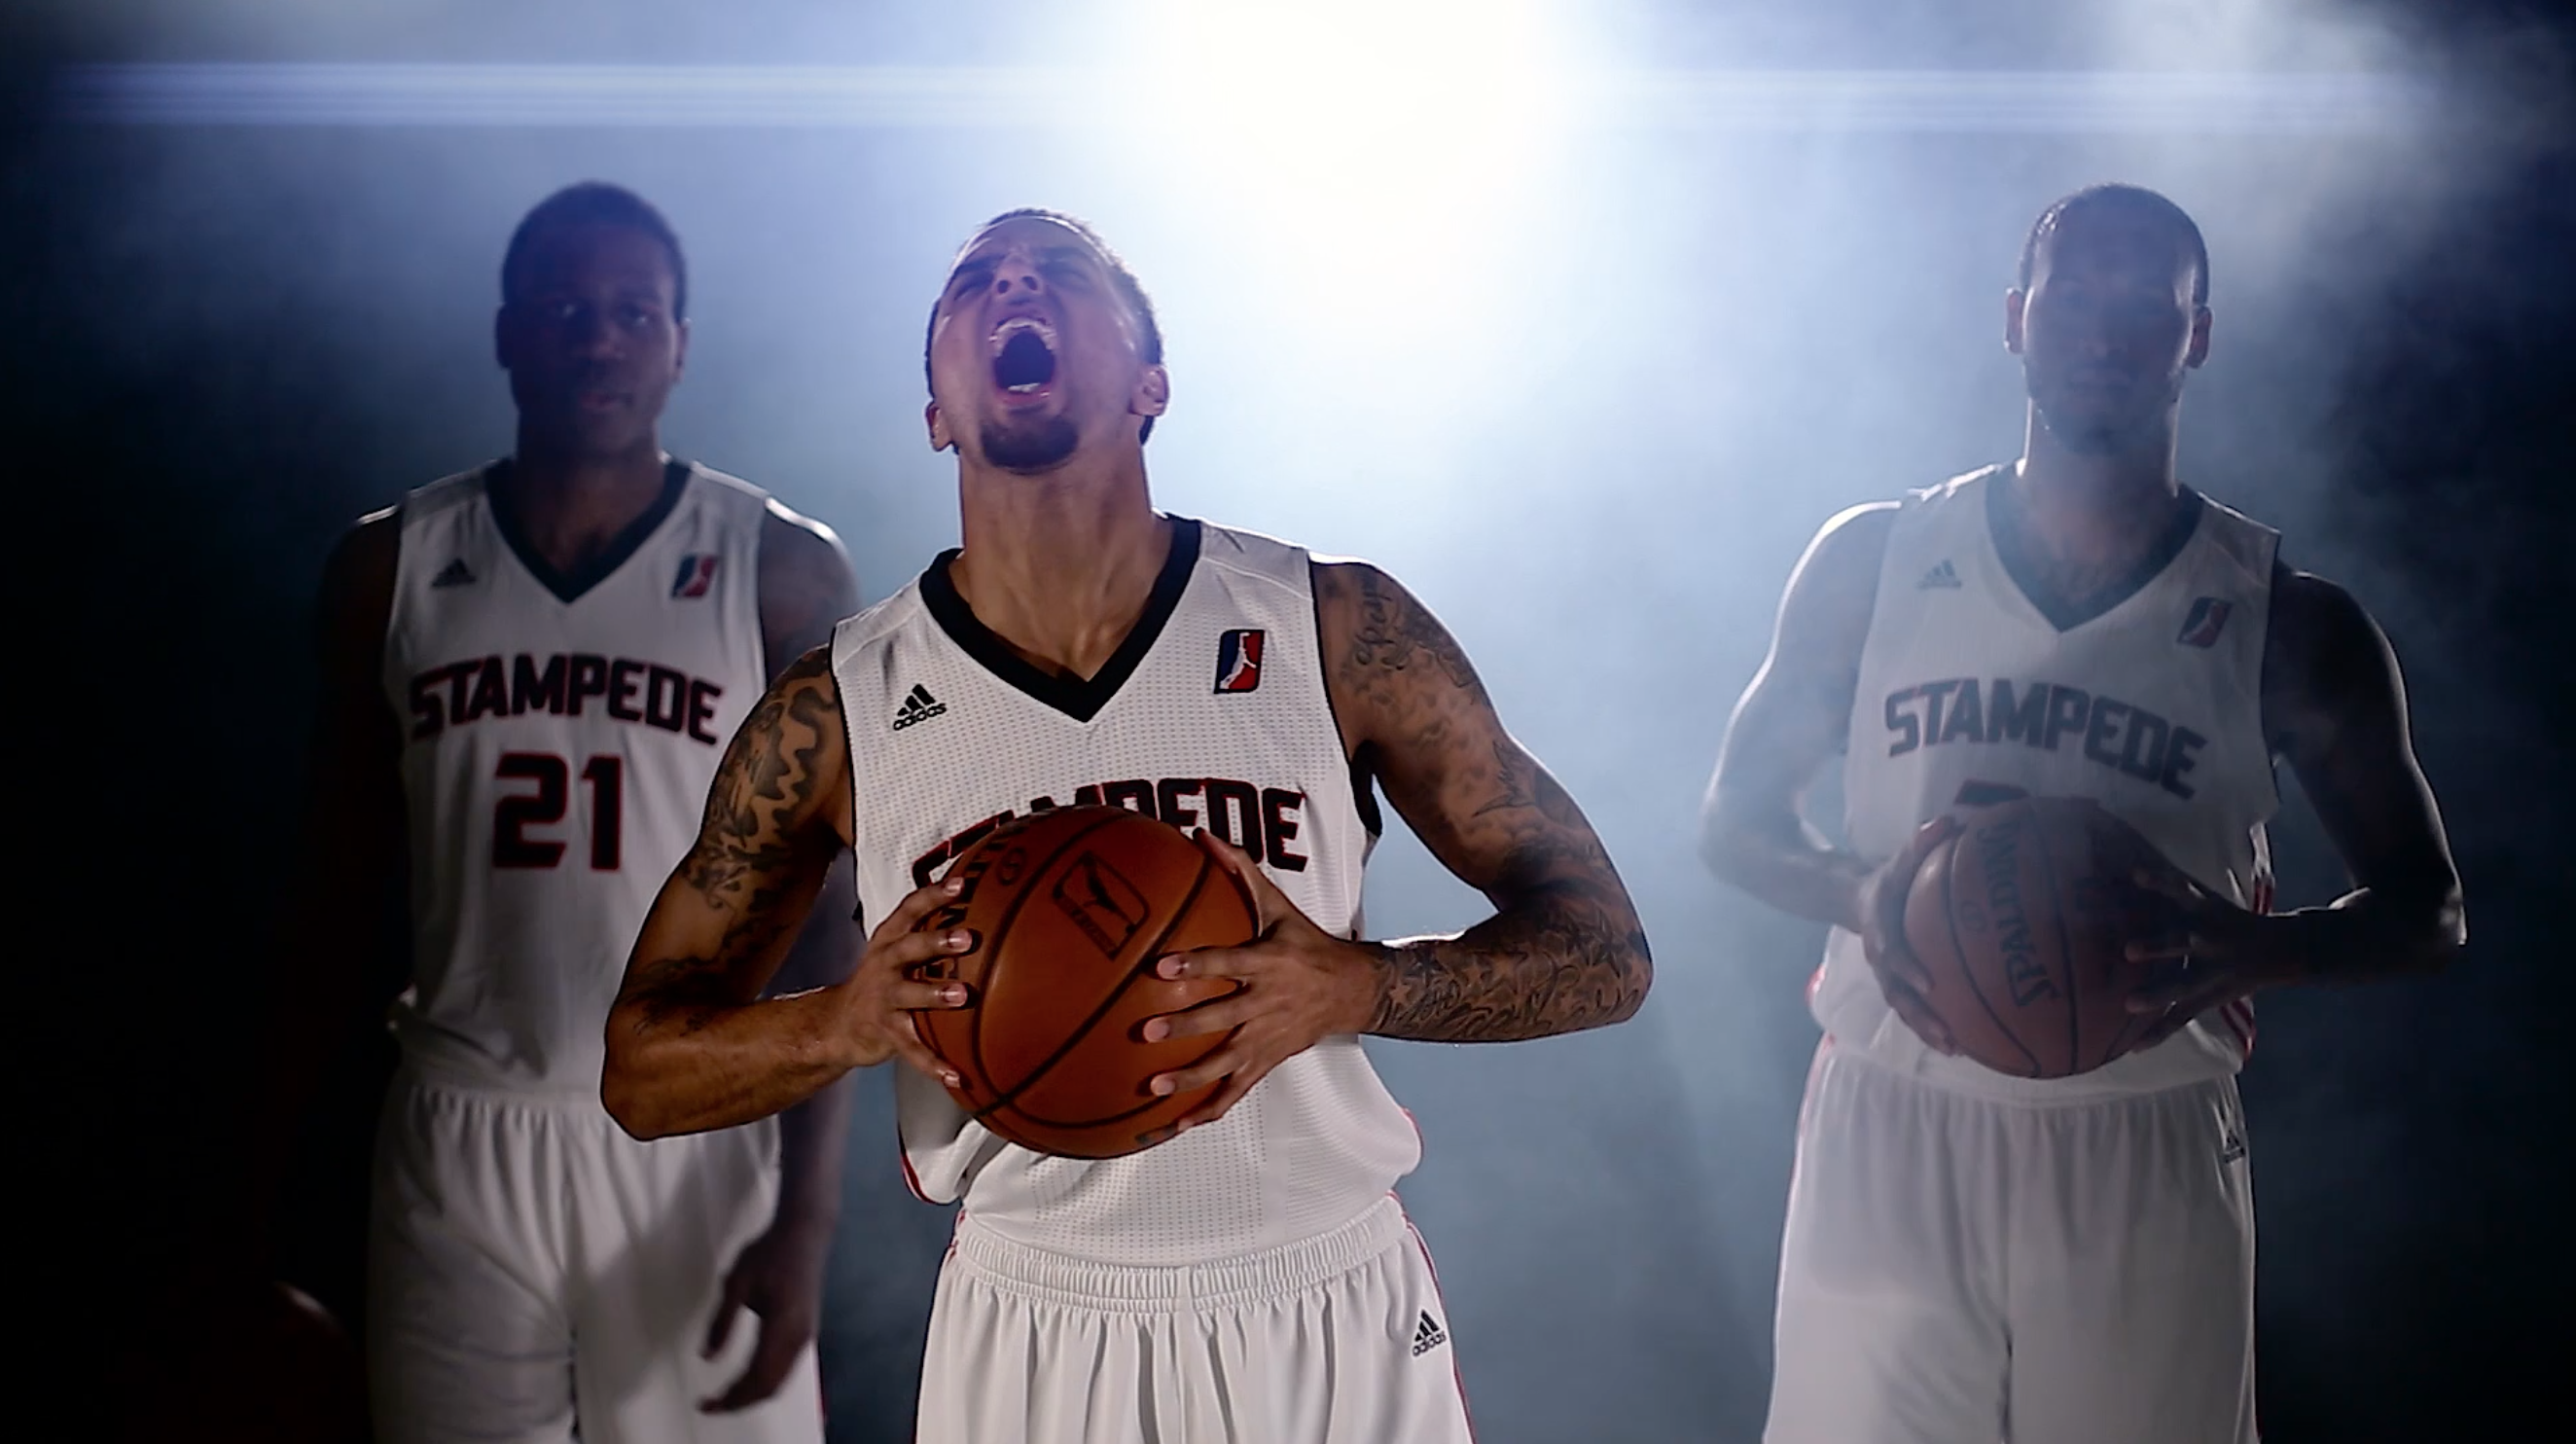 Idaho Stampede Basketball Intro Video 2015